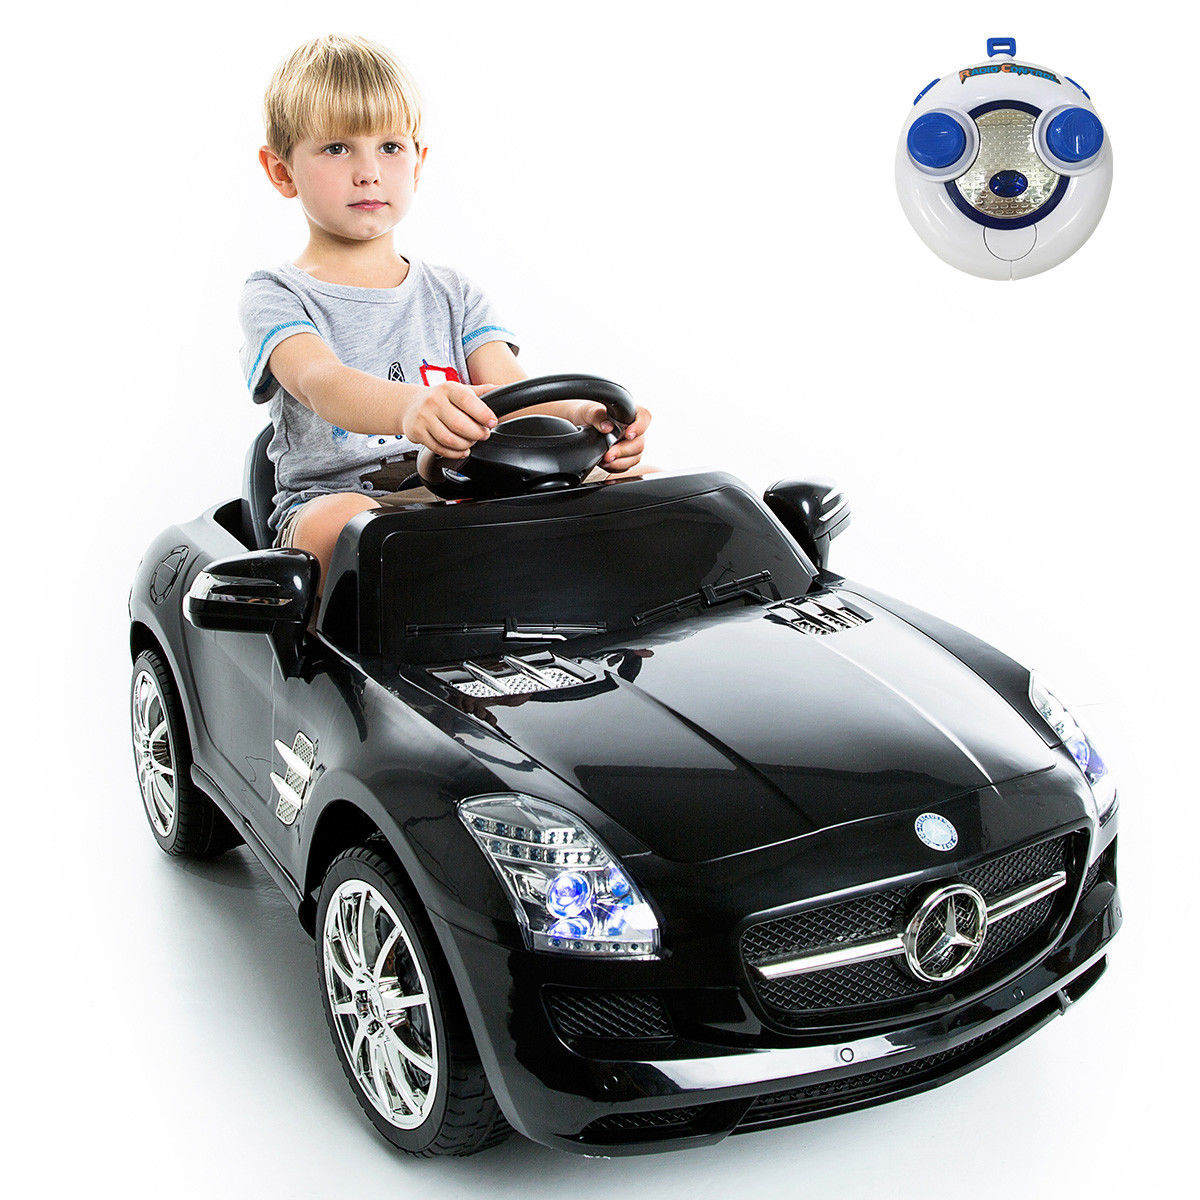 Goplus mercedes benz sls r/c mp3 kids ride on car electric battery toy Black